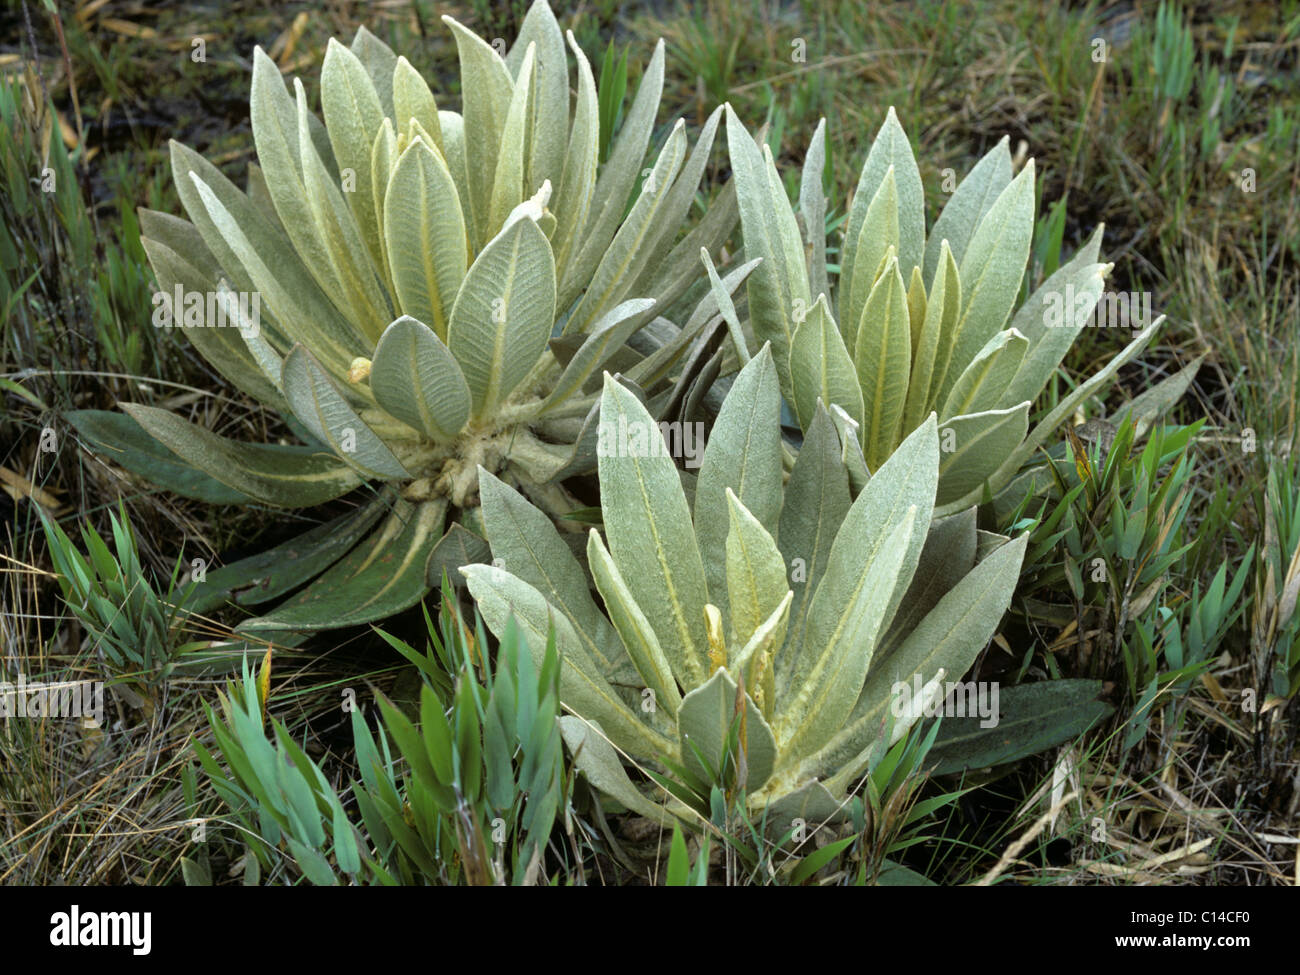 Frailejon (Espeletia schultzii) plants at 4800 metres in the Andes, Colombia - Stock Image